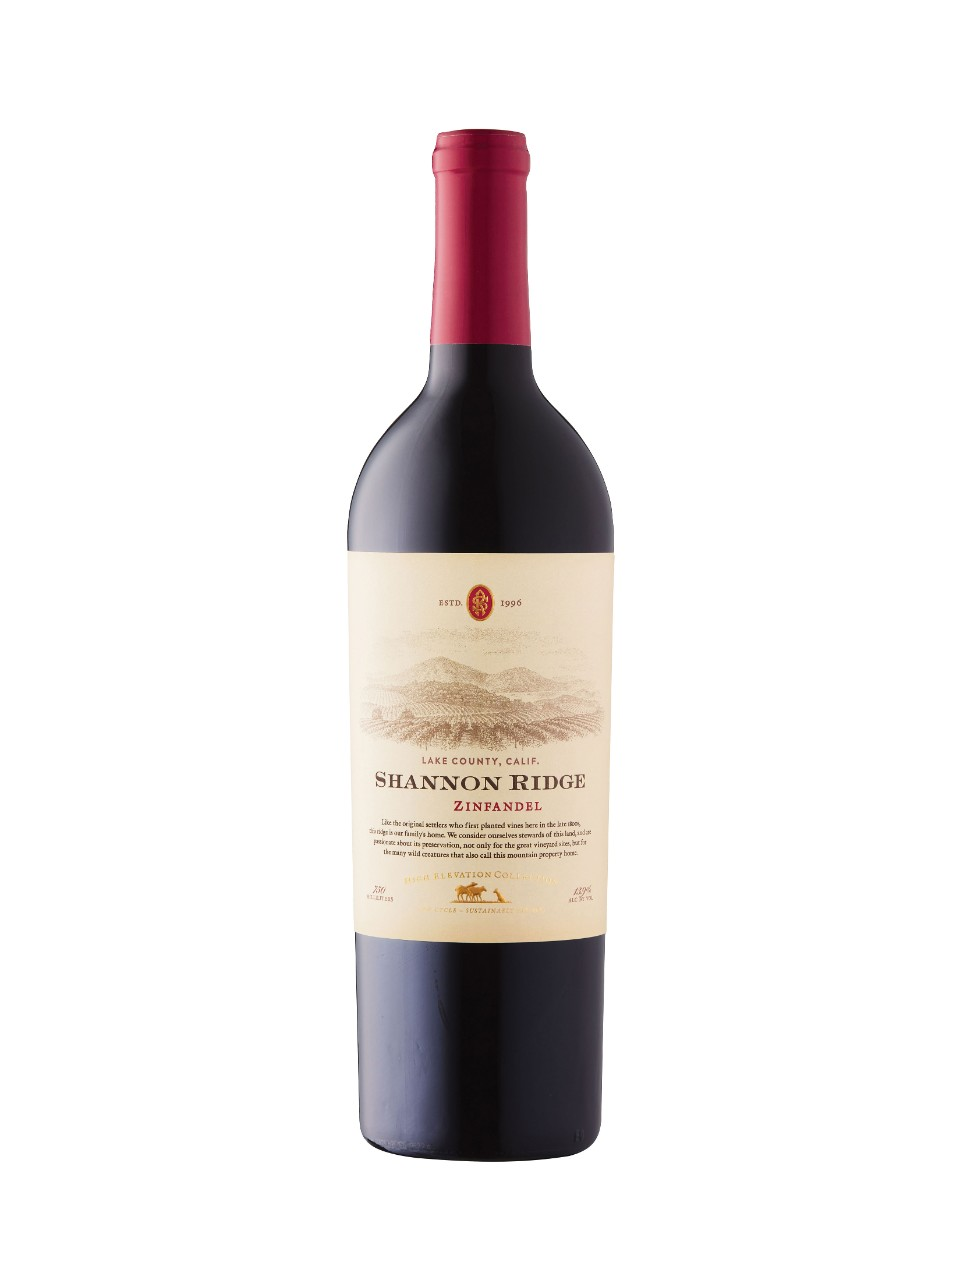 Shannon Ridge High Elevation Collection Zinfandel 2018 from LCBO